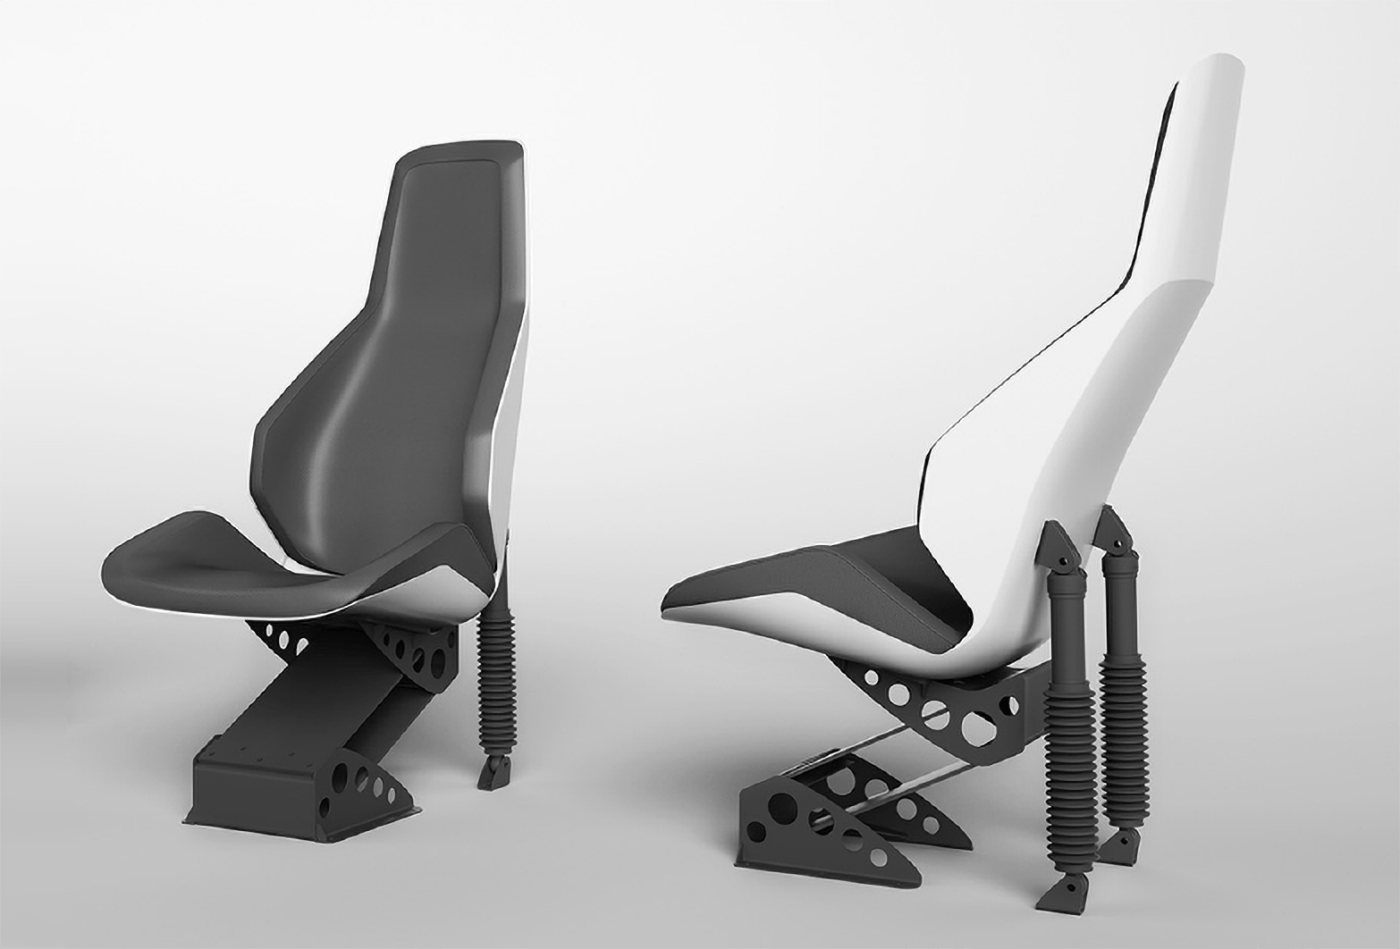 Iguana's shock-mitigating seats will make all the difference in terms of comfort